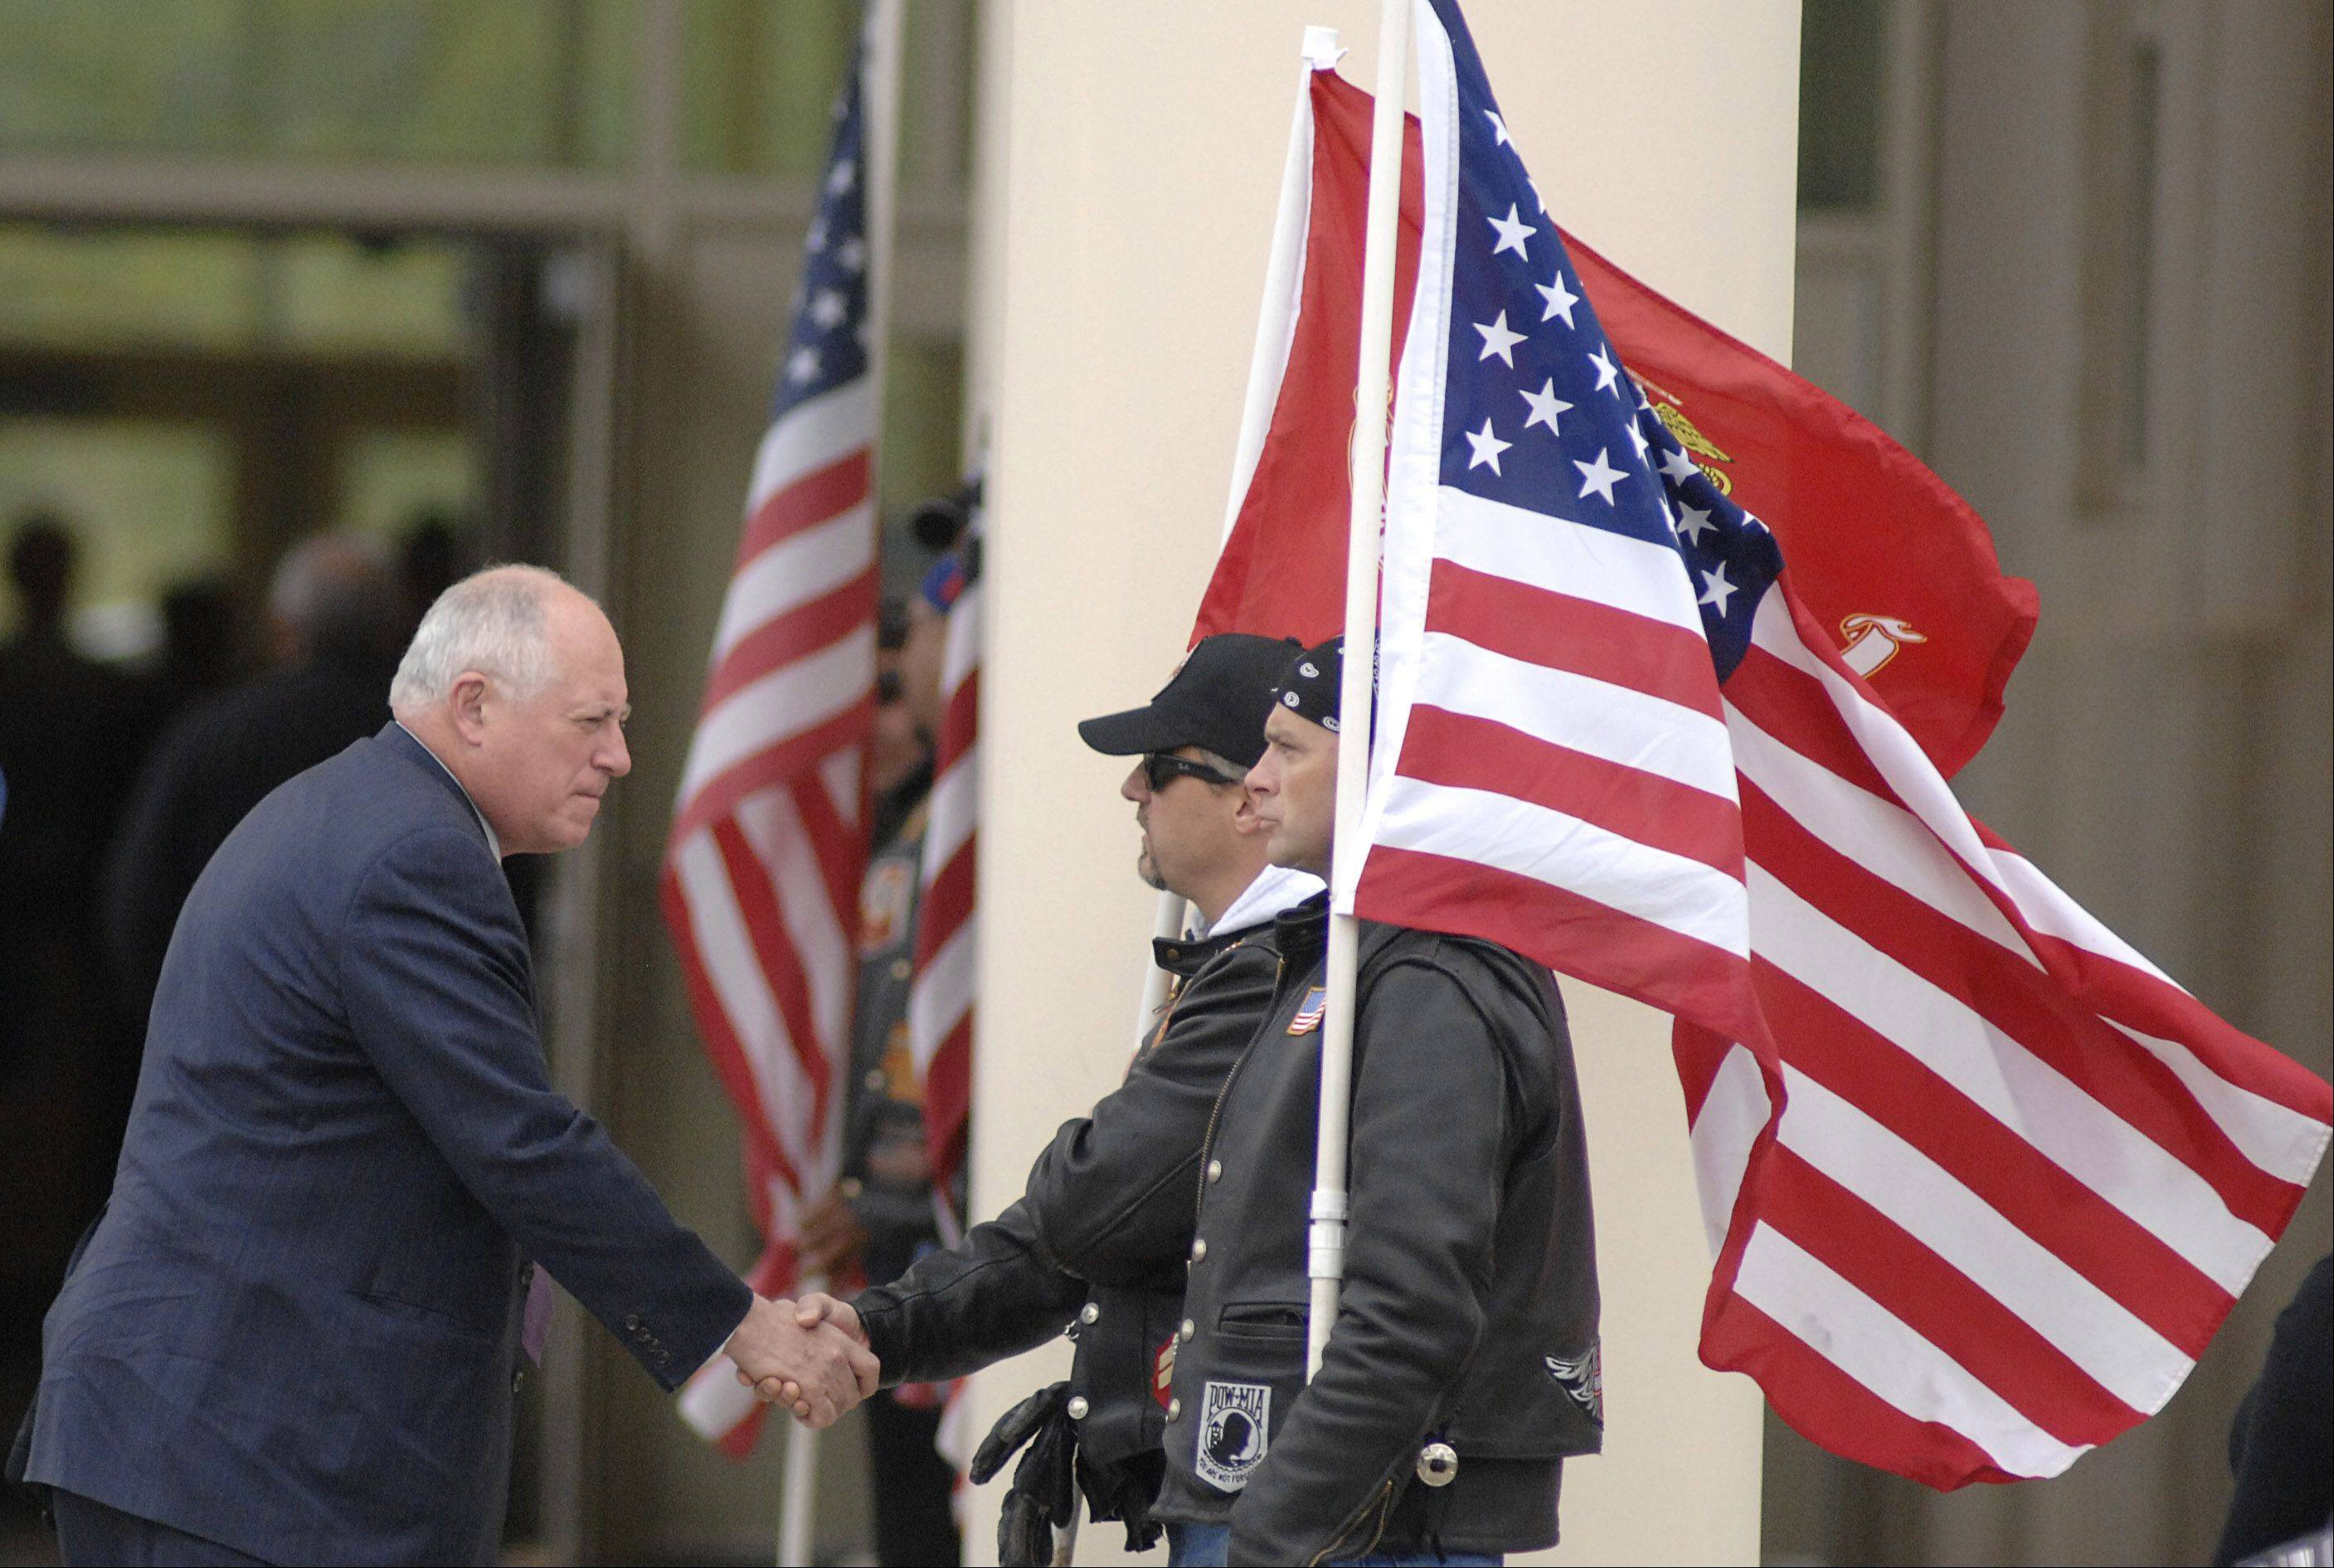 Illinois Gov. Pat Quinn greets members of the Patriot Guard standing outside Life Changers International Church for the funeral of Cpl. Alex Martinez in Hoffman Estates. The Marine from Elgin was killed during combat operations in Afghanistan.